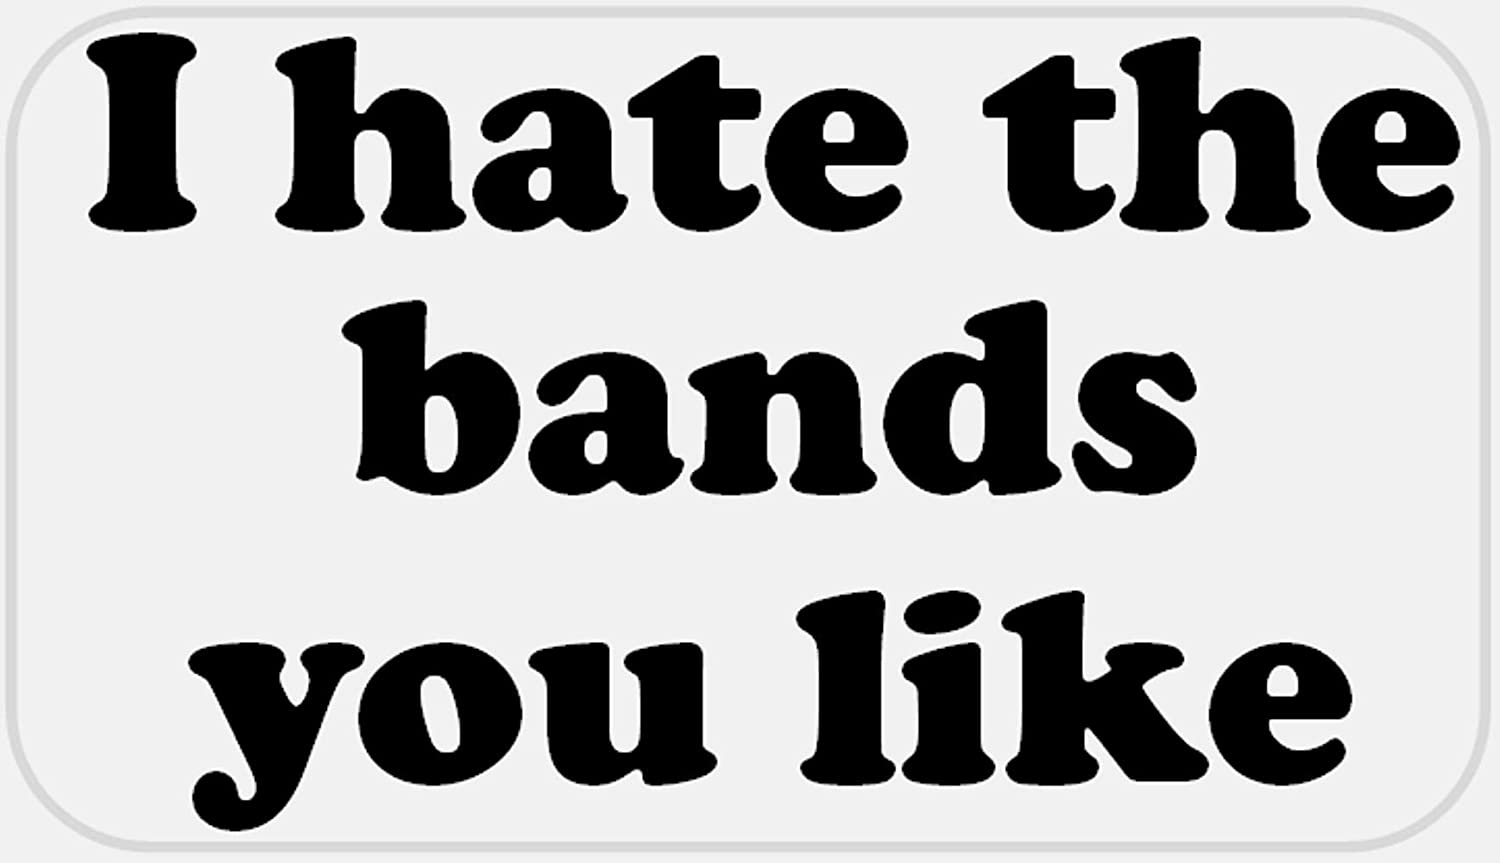 I Hate The Bands You Like - 50 Stickers Pack 2.25 x 1.25 inches